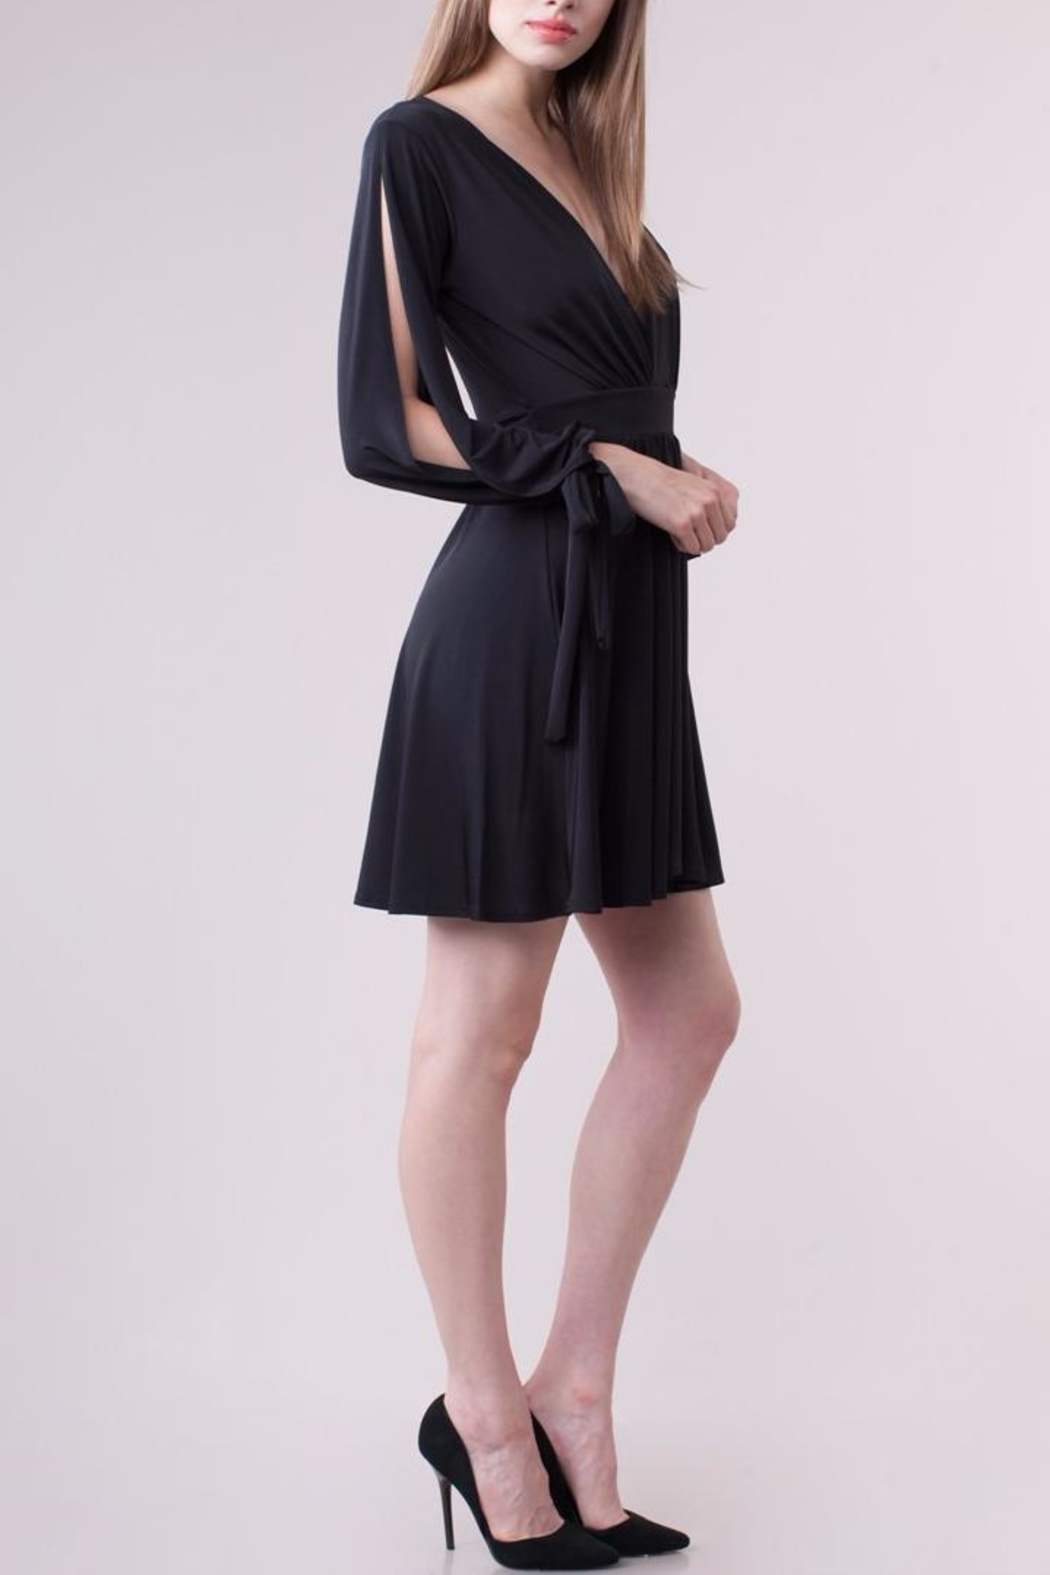 People Outfitter Bennett Black Dress - Side Cropped Image